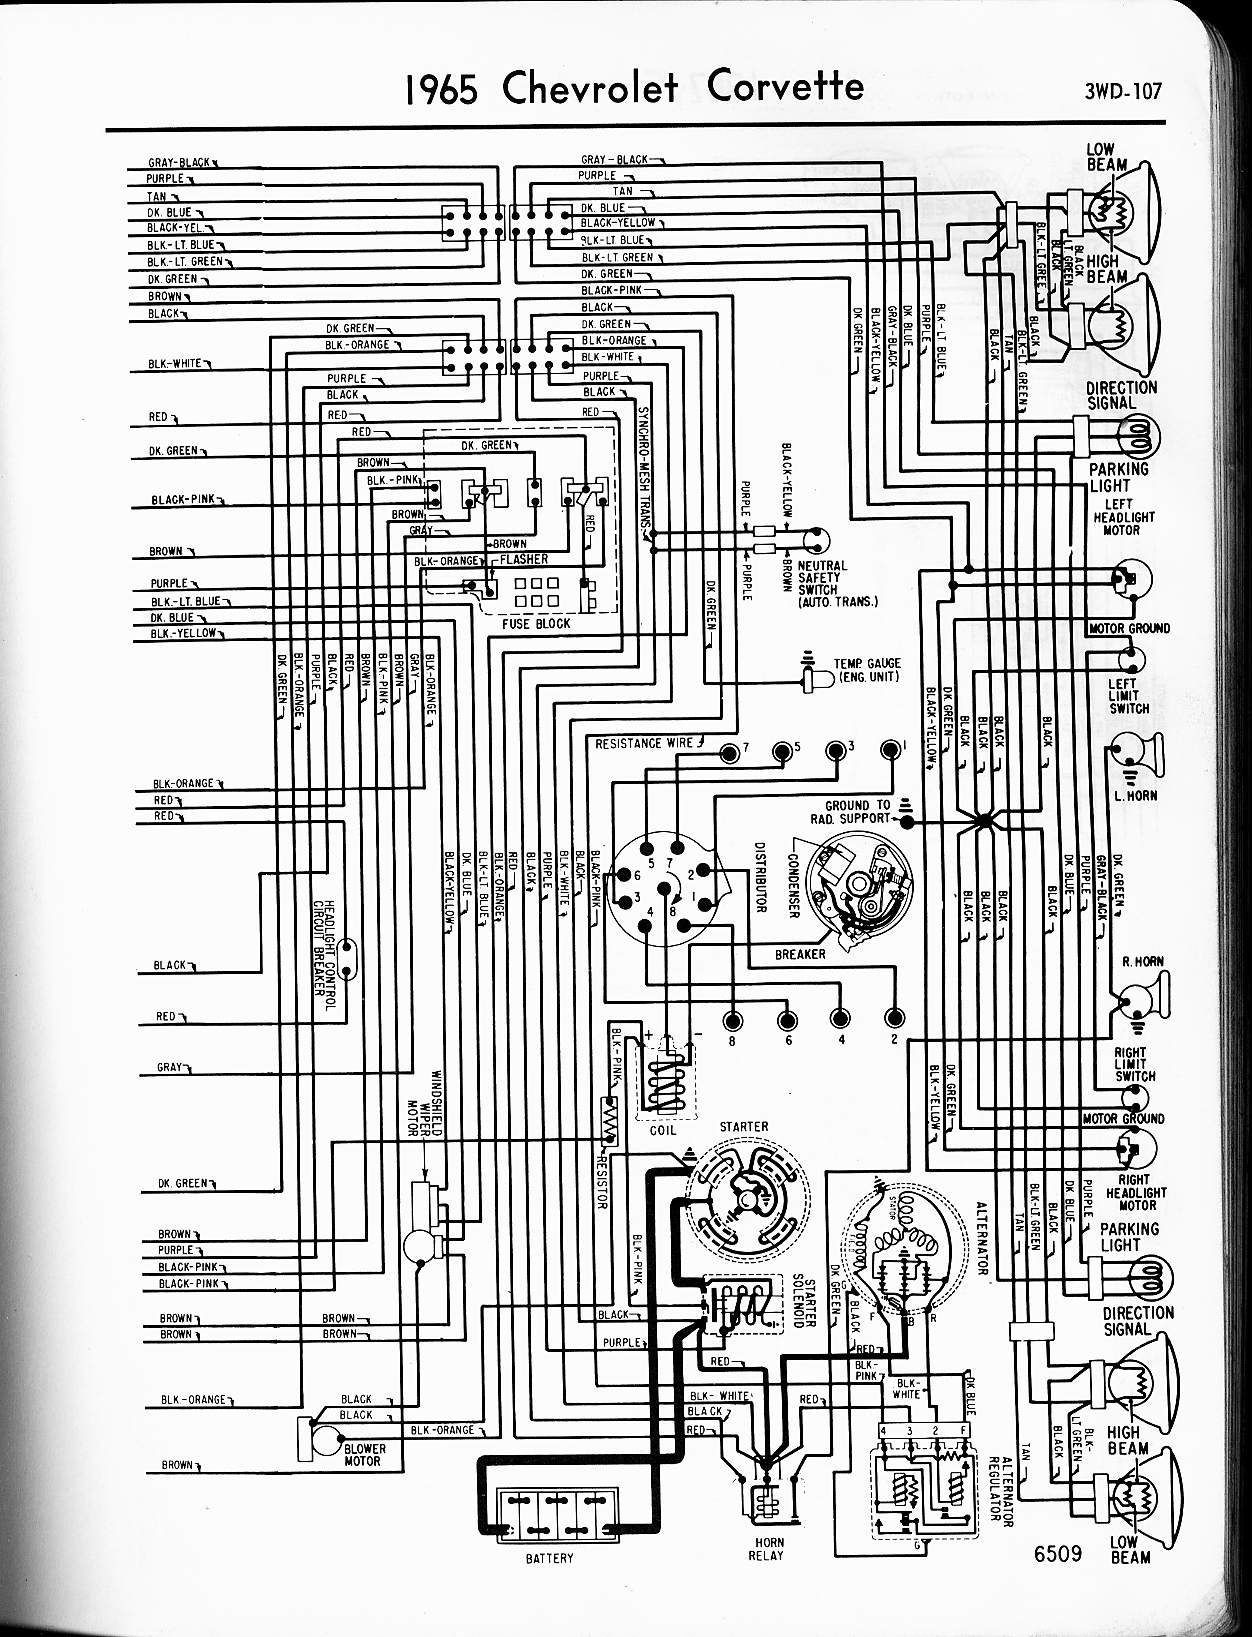 1973 Corvette Wiring Diagram Another Blog About Citroen C3 76 Stingray Rh Twosoutherndivas Co Dash